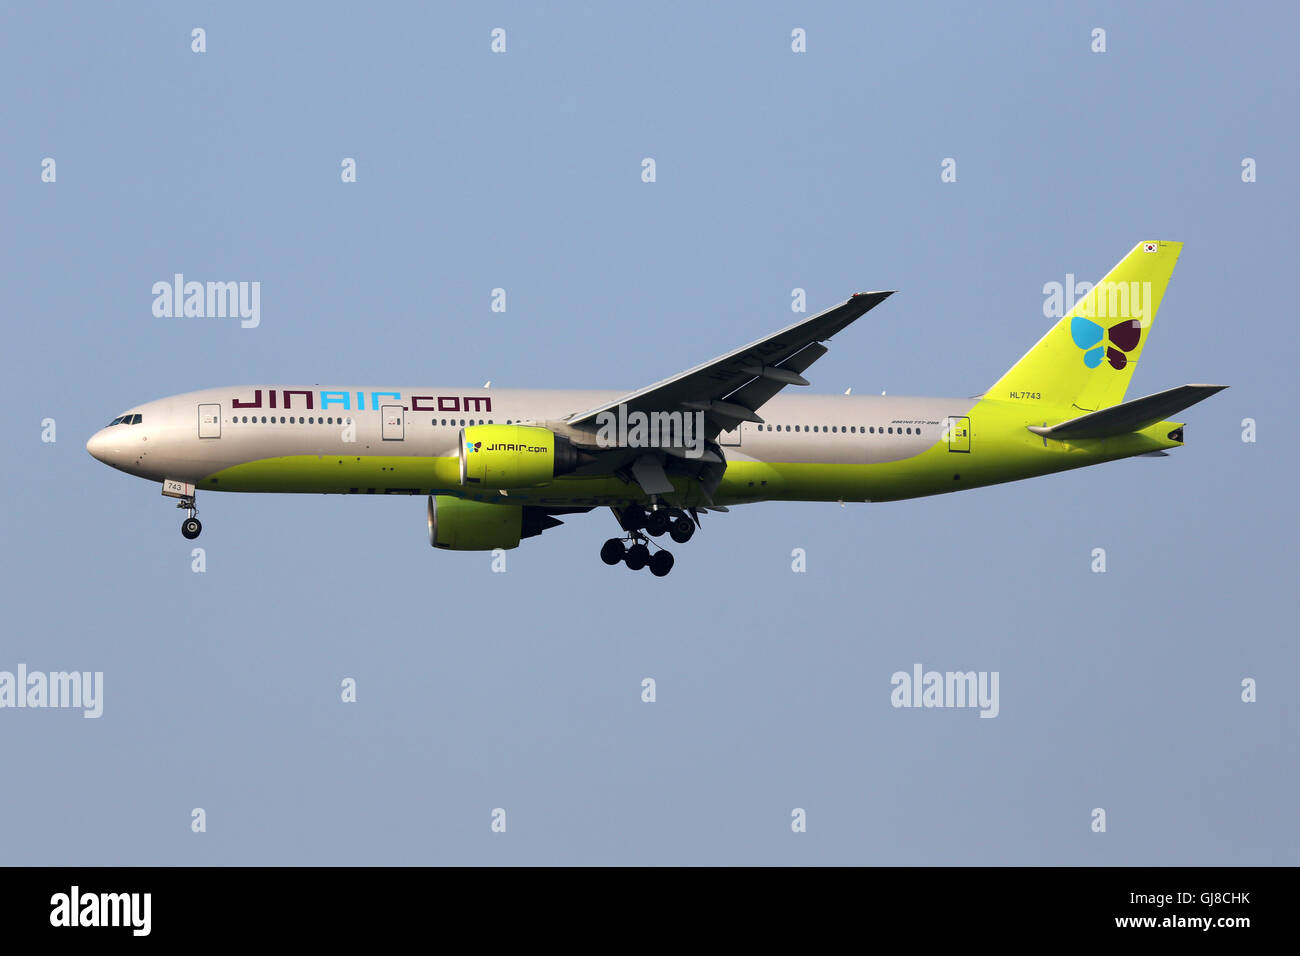 Incheon, South Korea - May 24, 2016: A Jin Air Boeing 777-200 airplane with the registration HL7743 approaching - Stock Image